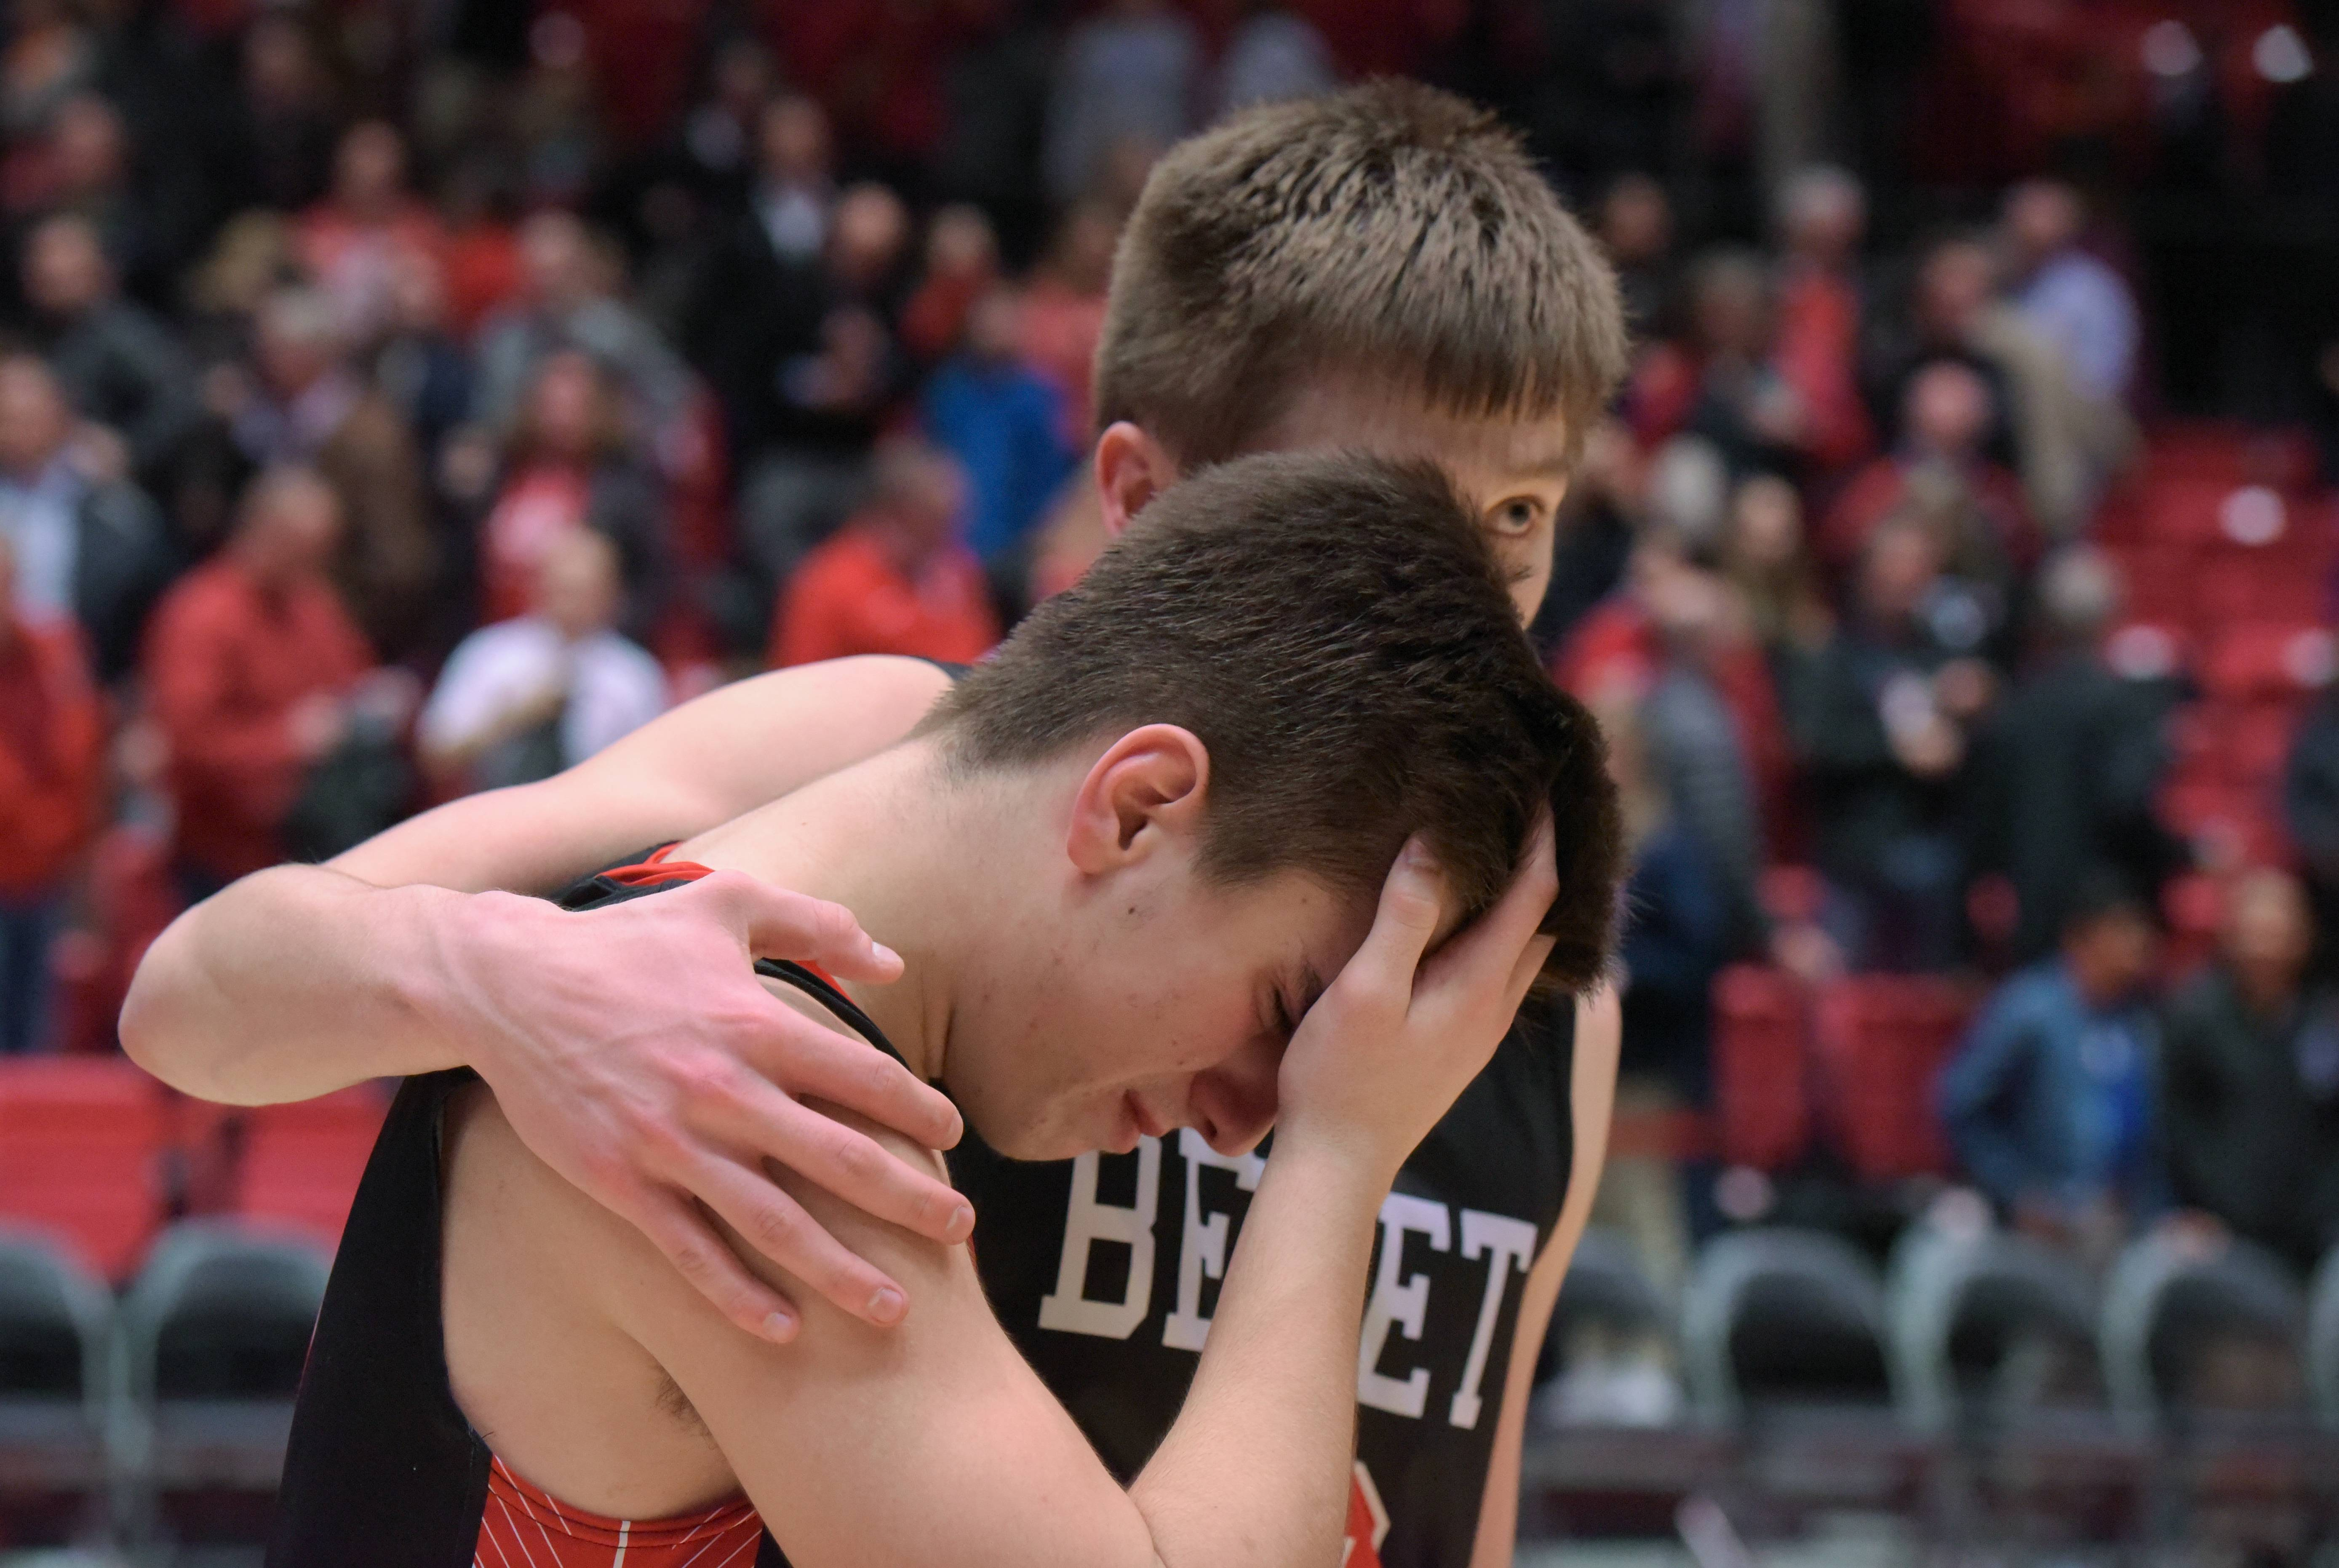 Benet's Jacob Petrovic (4) and Benet's David Buh (12) react their 53-46 loss to Larkin during the boys basketball 4A super-sectional at the Convocation Center in DeKalb on Tuesday, March 13, 2018.